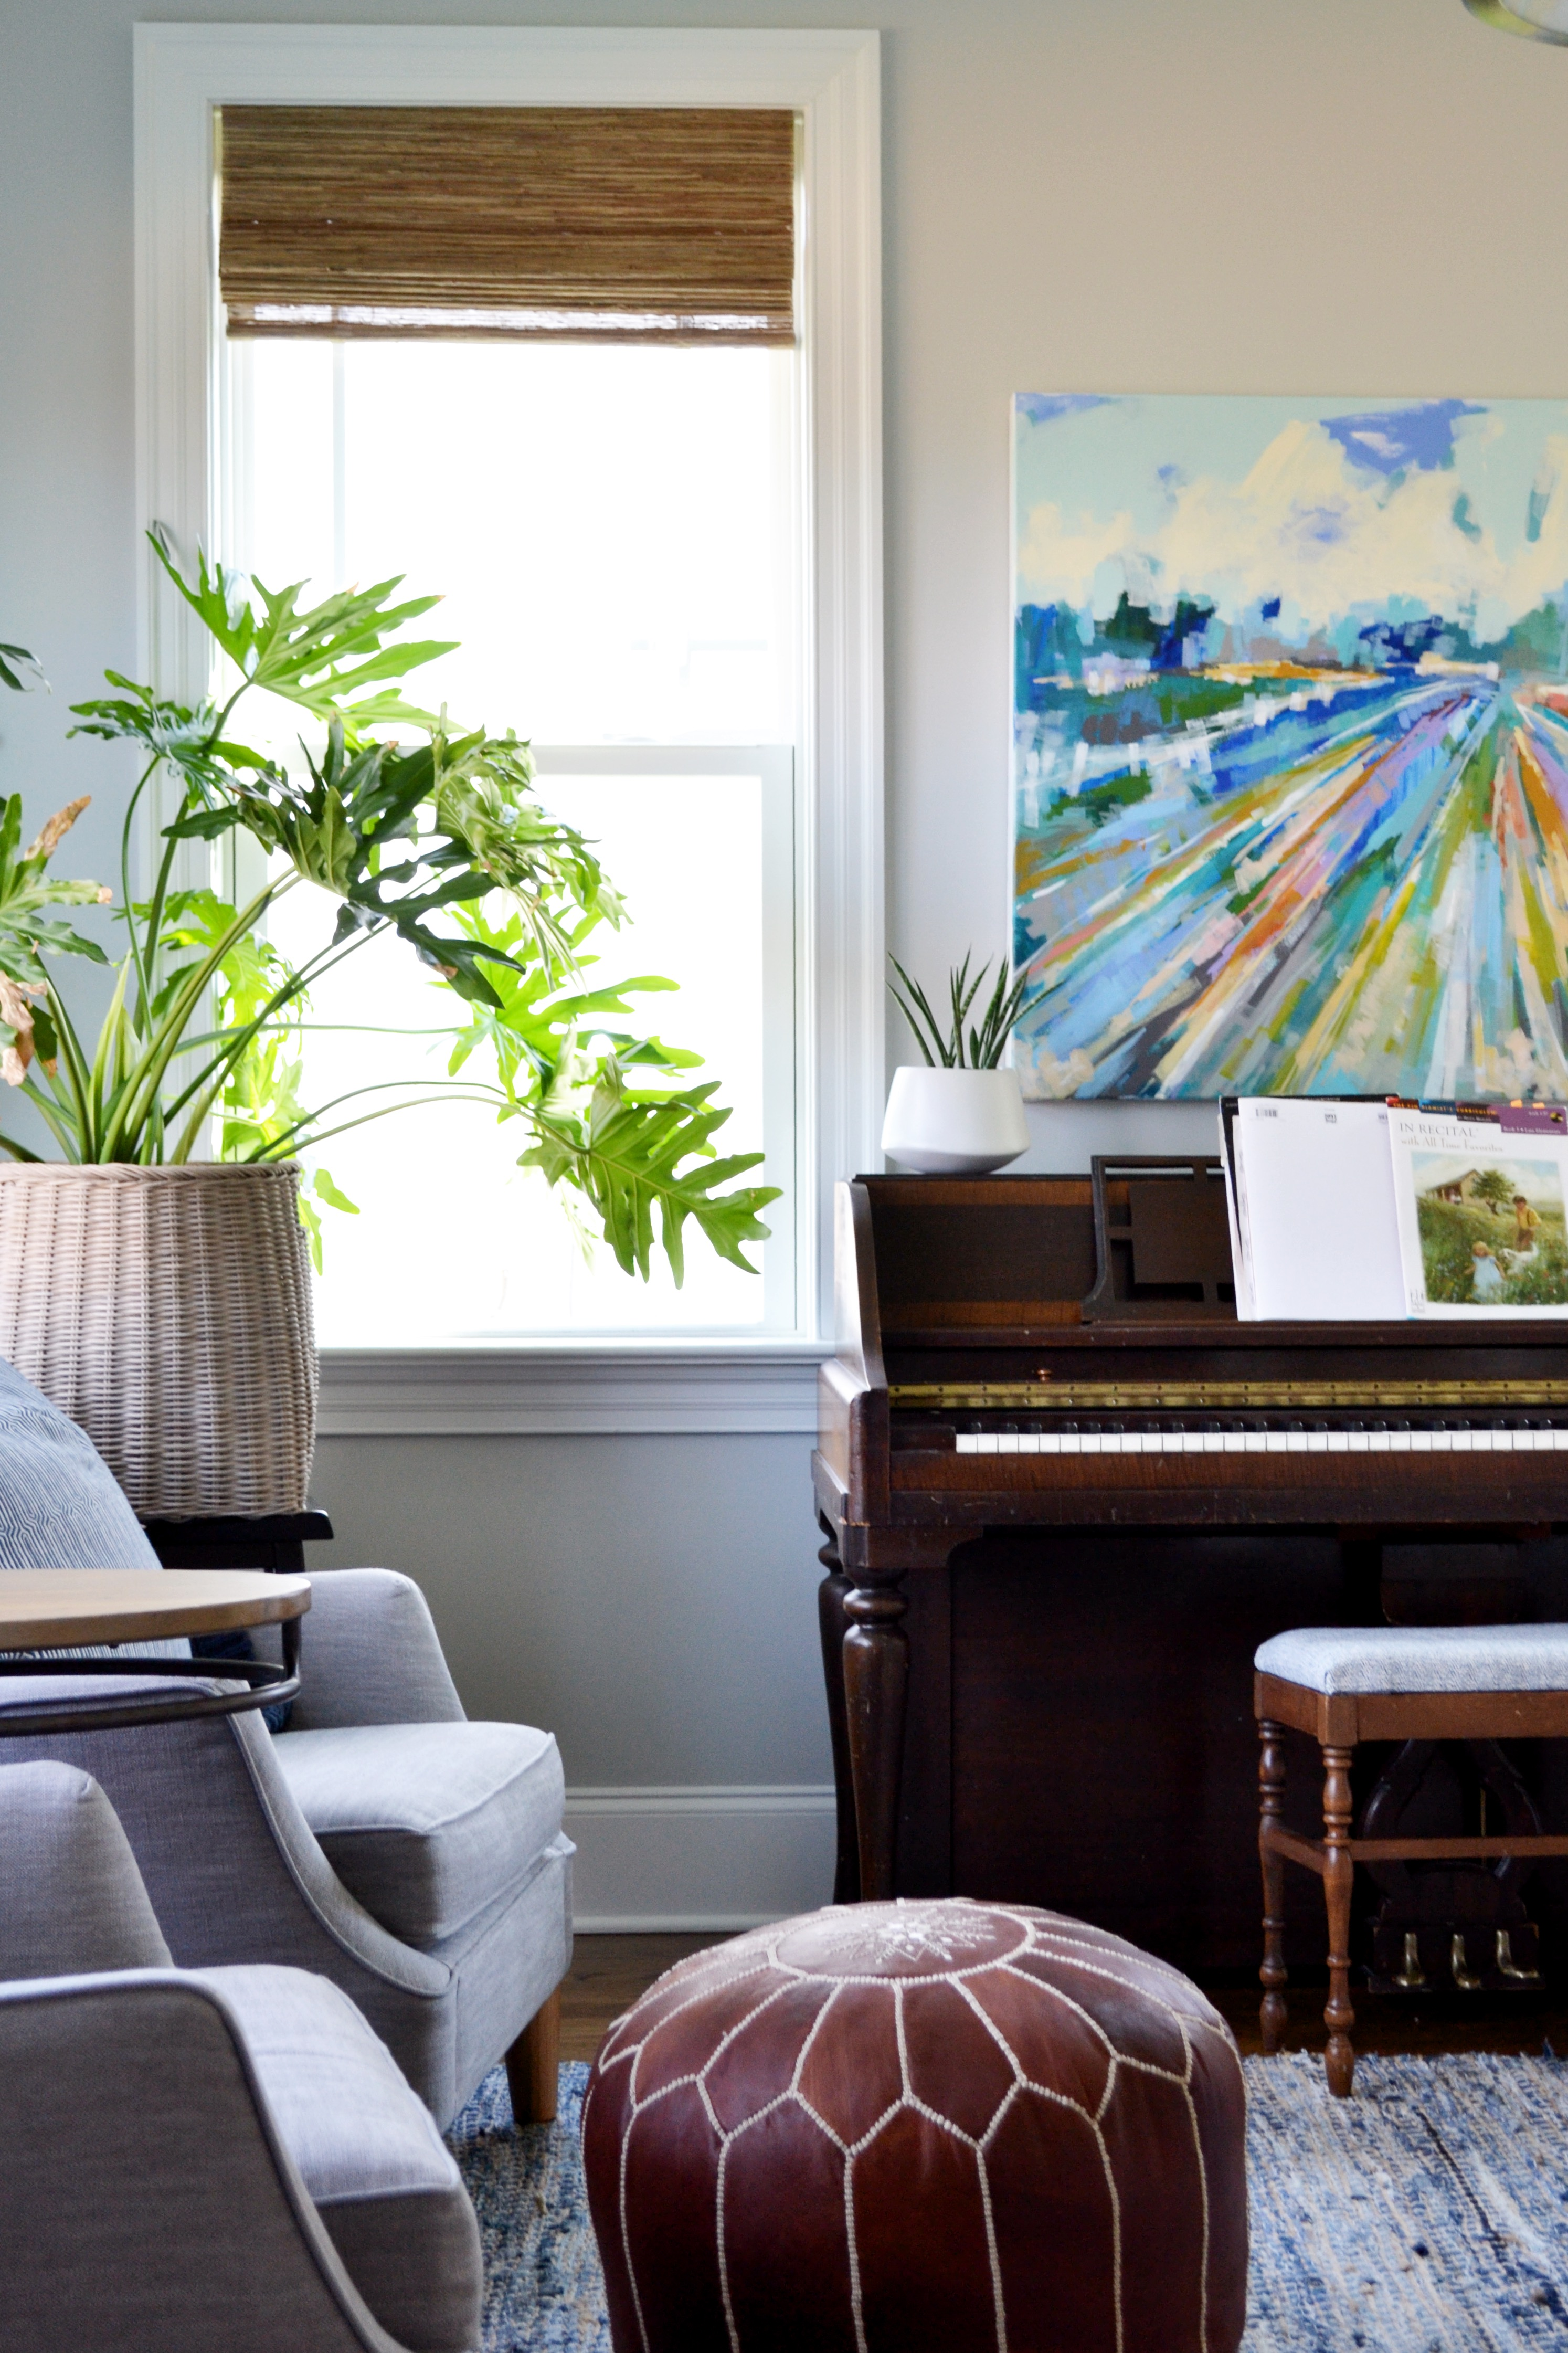 How To Furnish House With Modern Furniture: How To Furnish An Empty Room In Three Steps